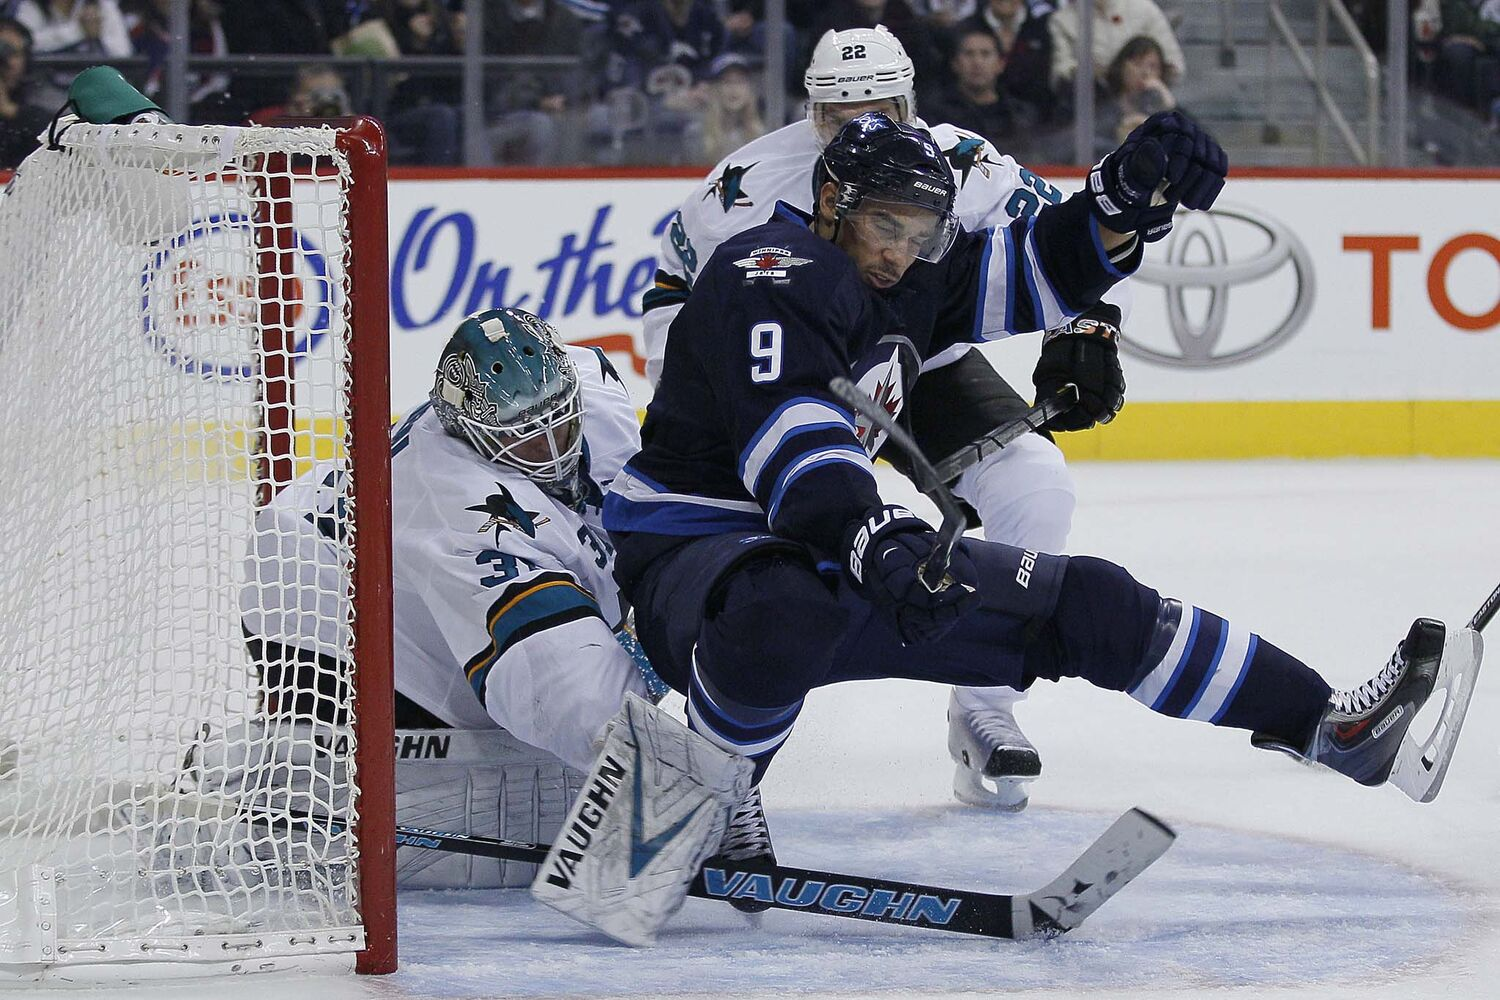 Winnipeg Jets' Evander Kane (9) crashes hard into San Jose Sharks' goaltender Antti Niemi (31) during second period action.